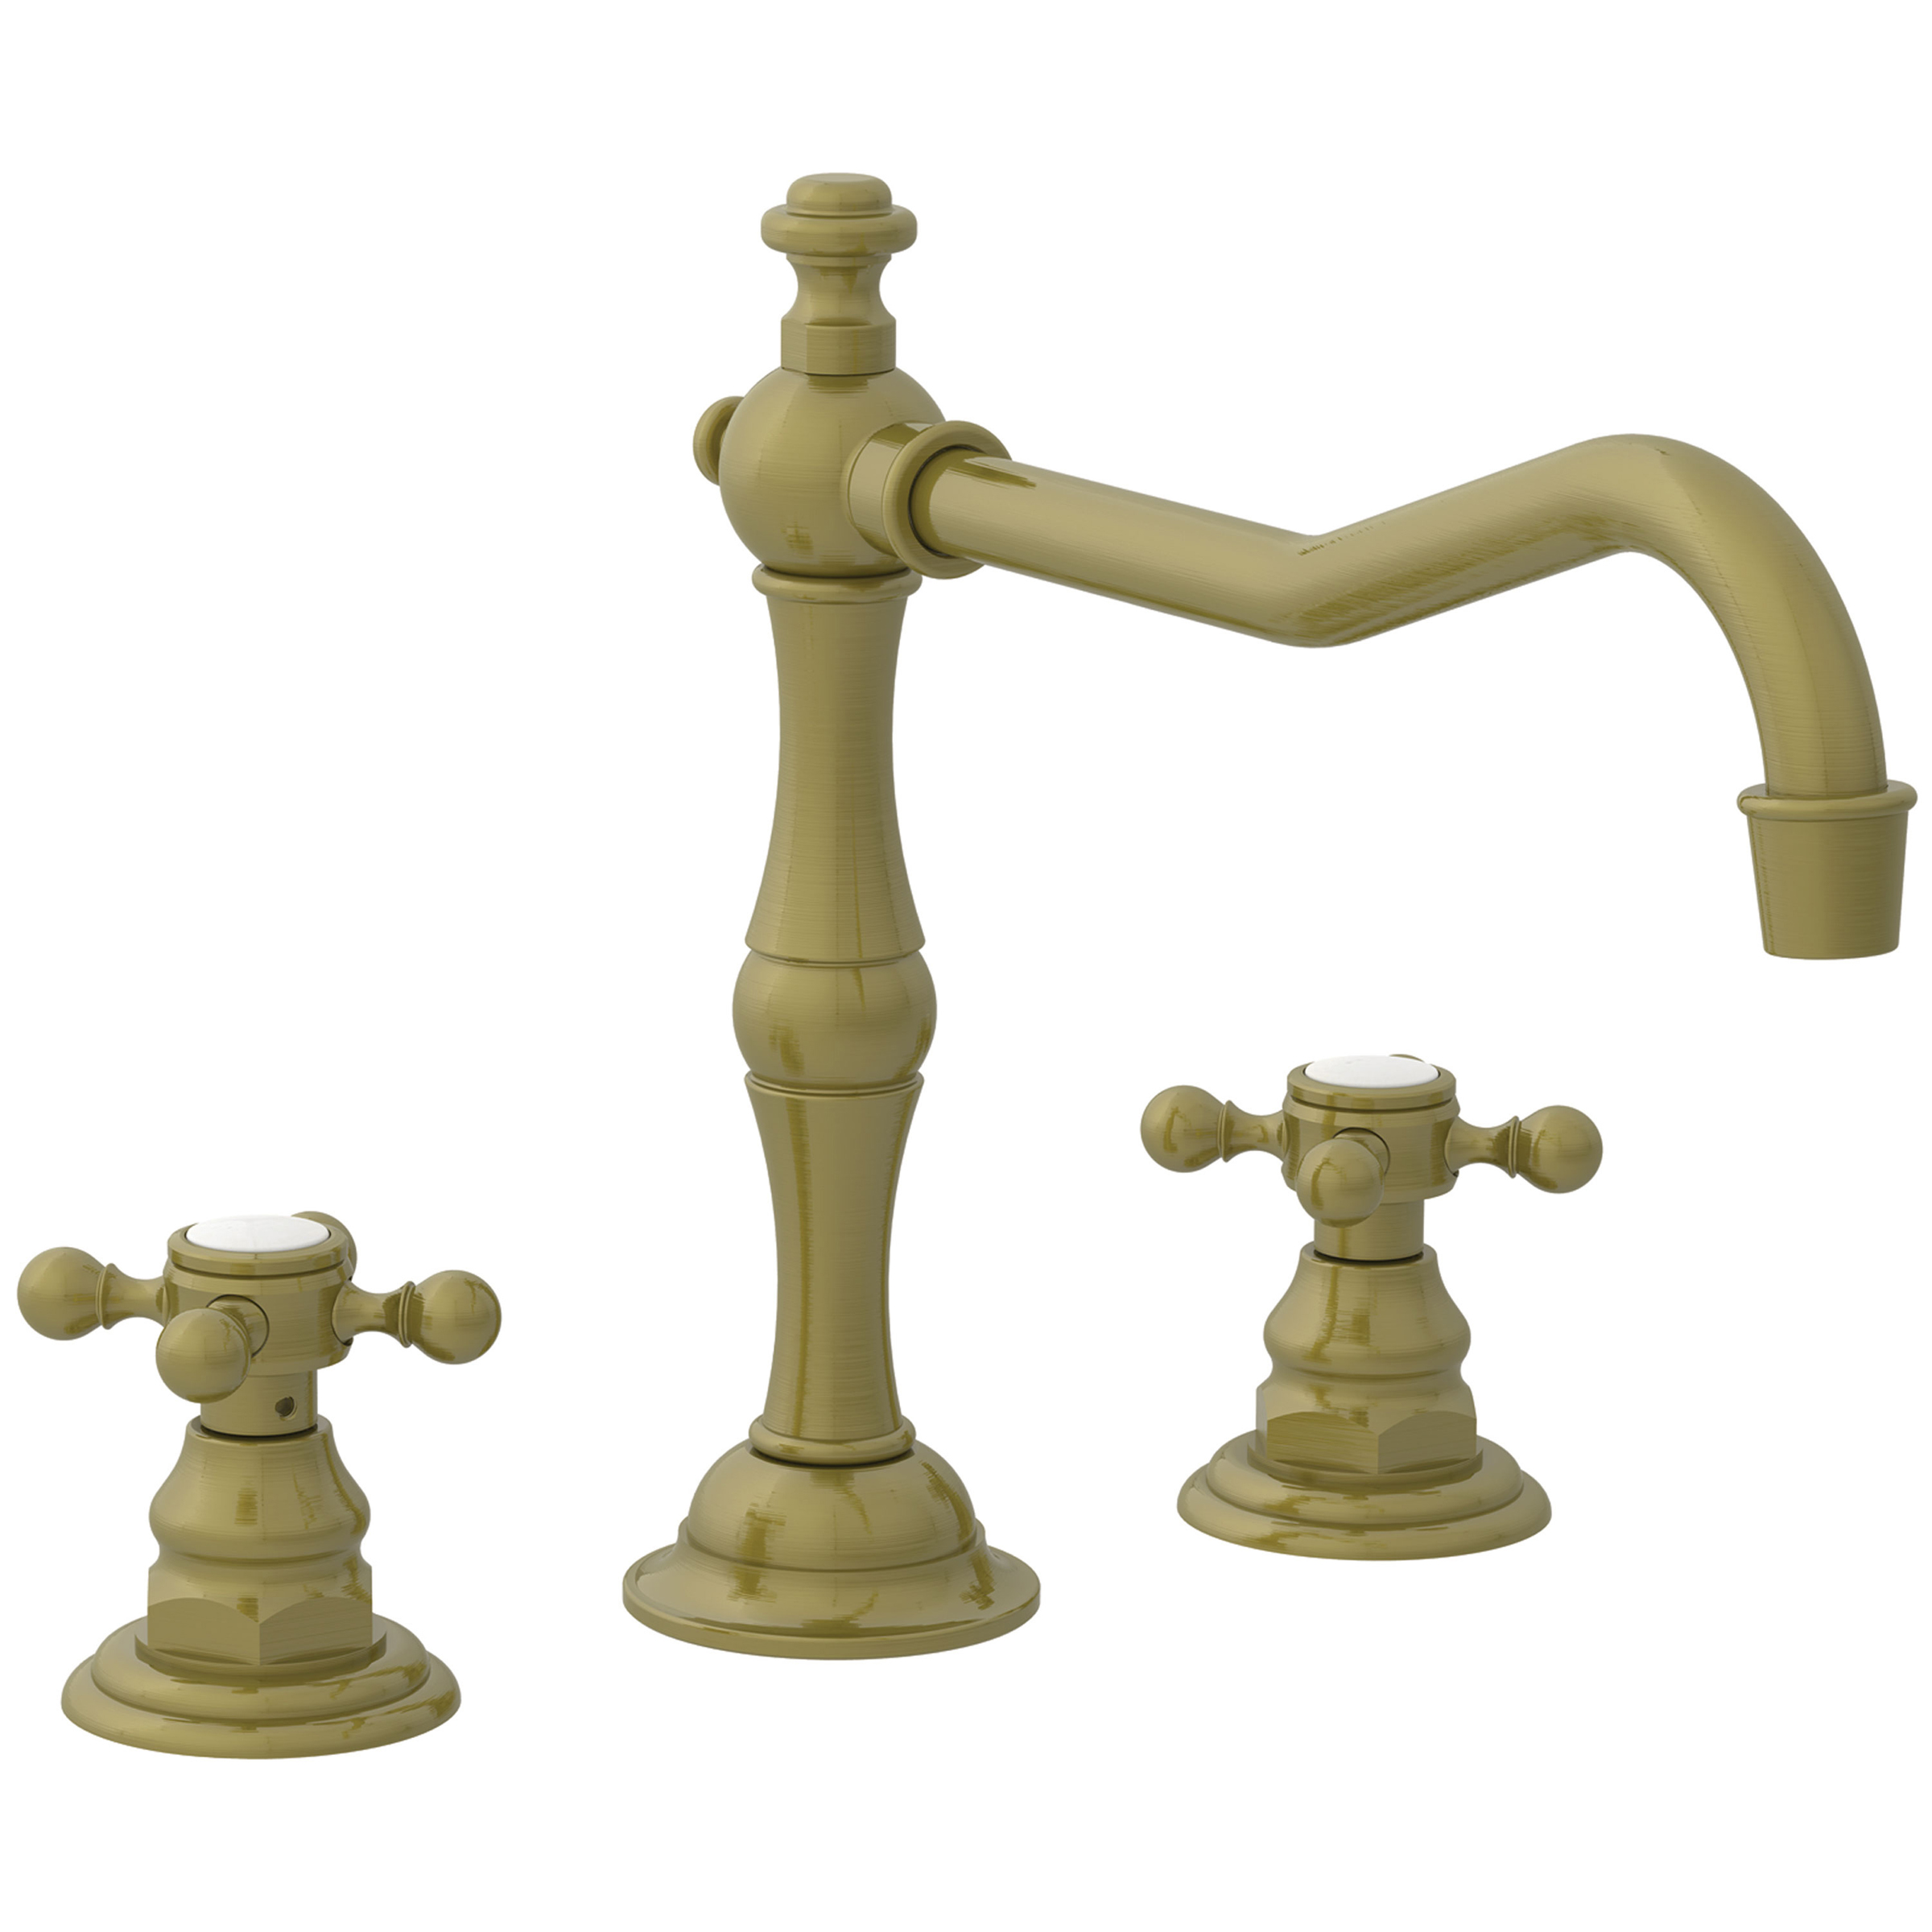 Newport Brass 942 Chesterfield Kitchen Faucet Newport Brass Faucets